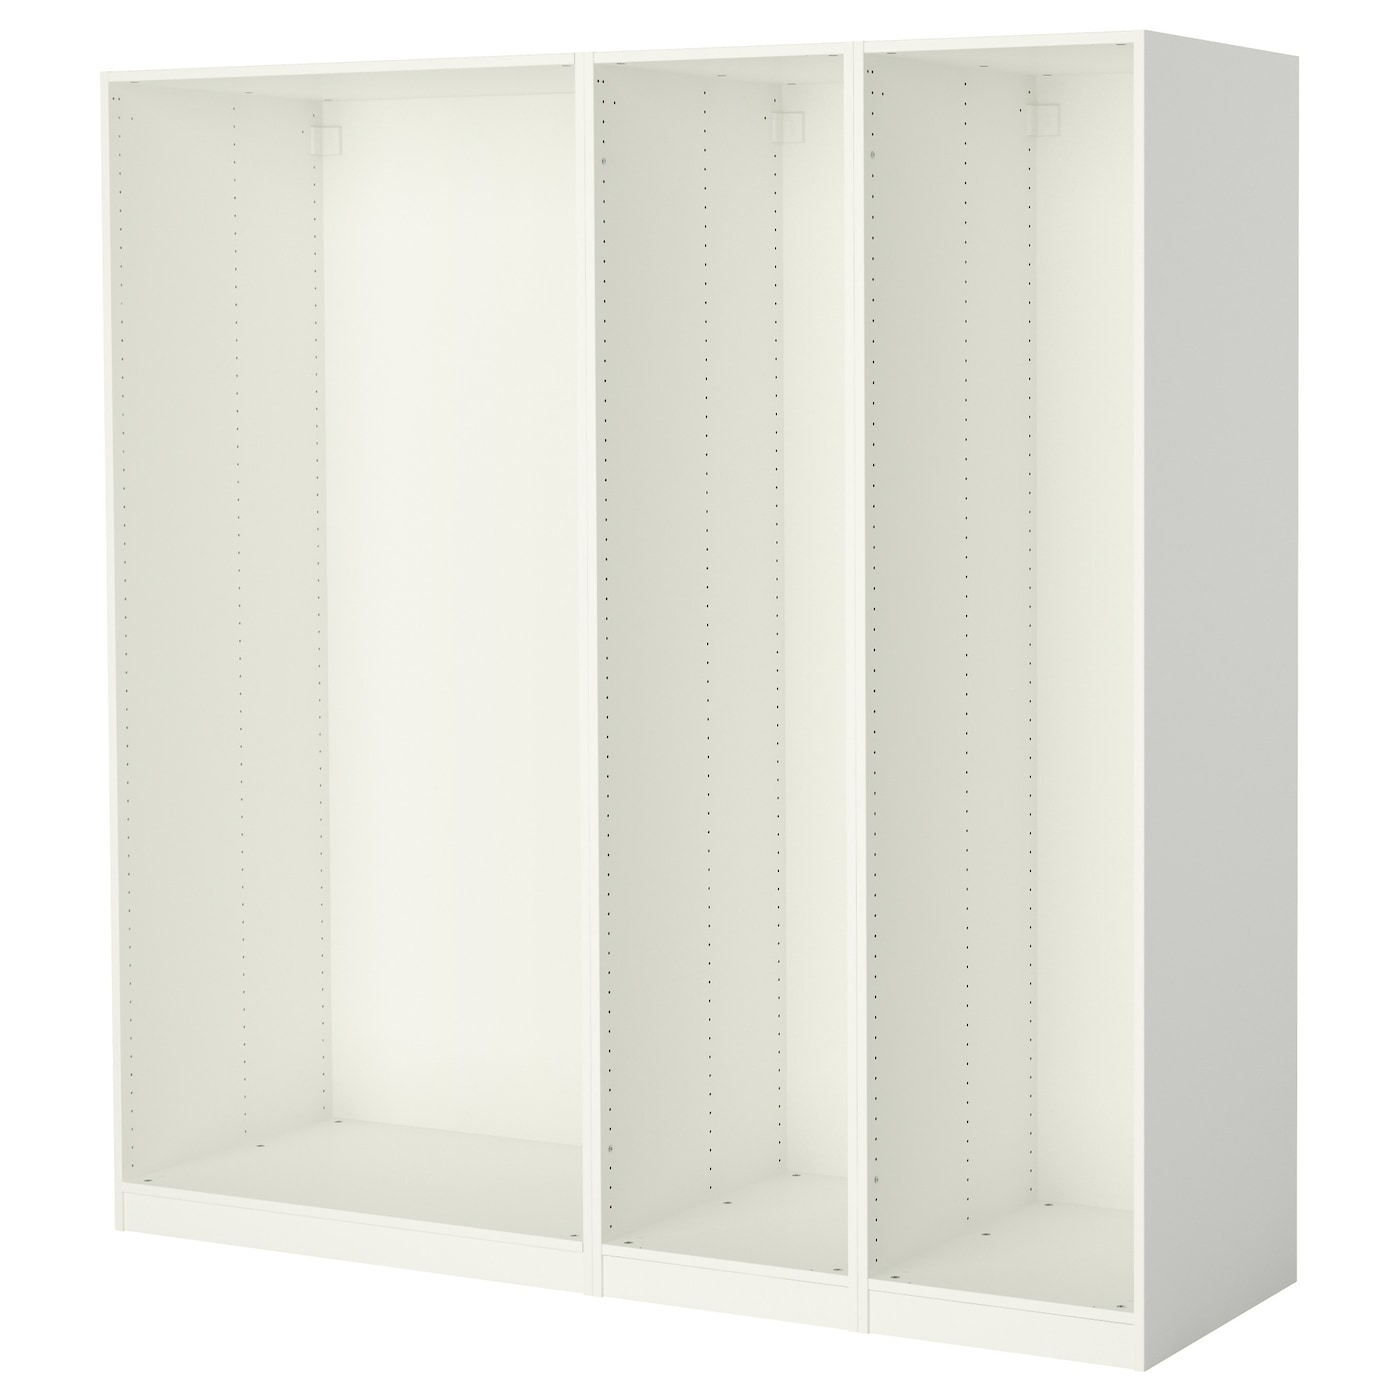 IKEA PAX 3 wardrobe frames 10 year guarantee. Read about the terms in the guarantee brochure.